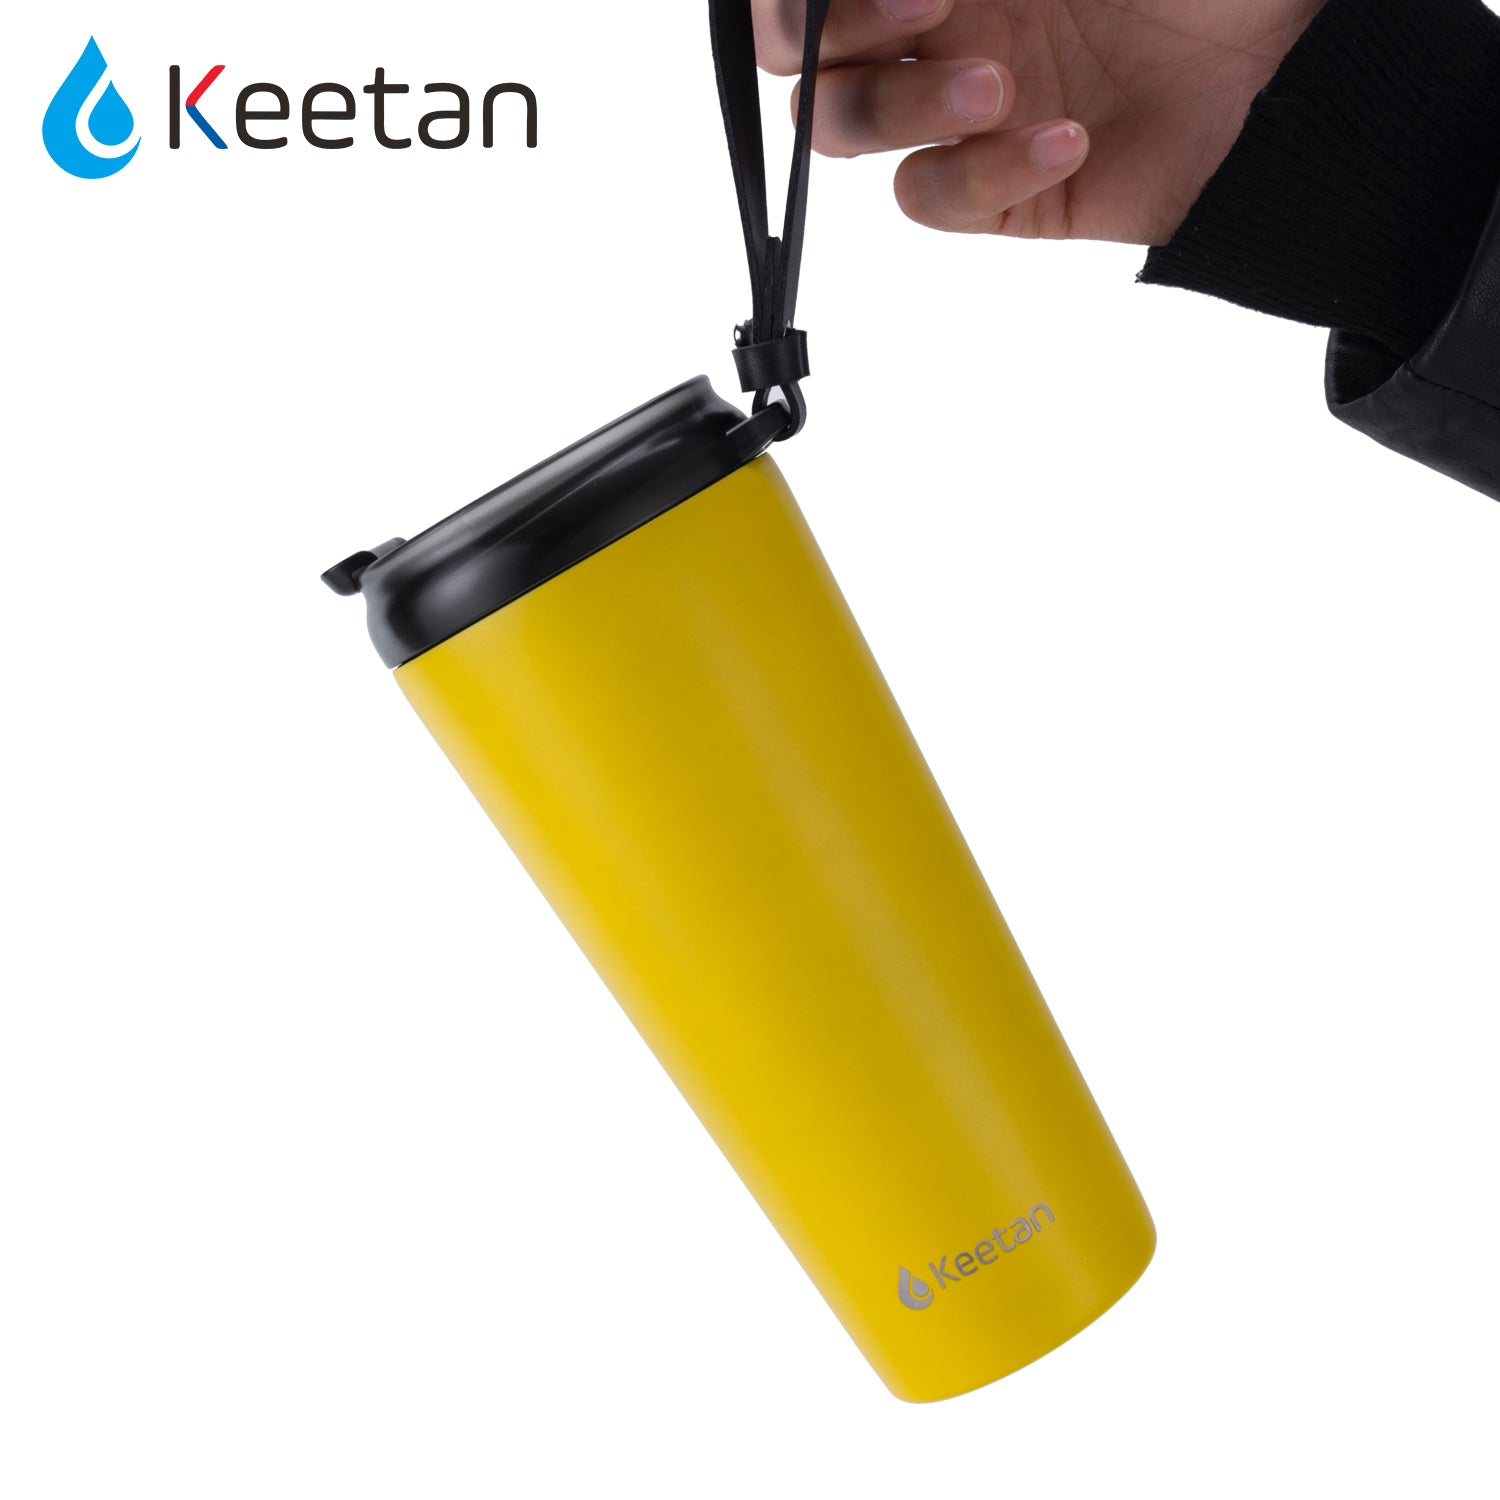 Keetan MERCURY Tumbler-Yellow